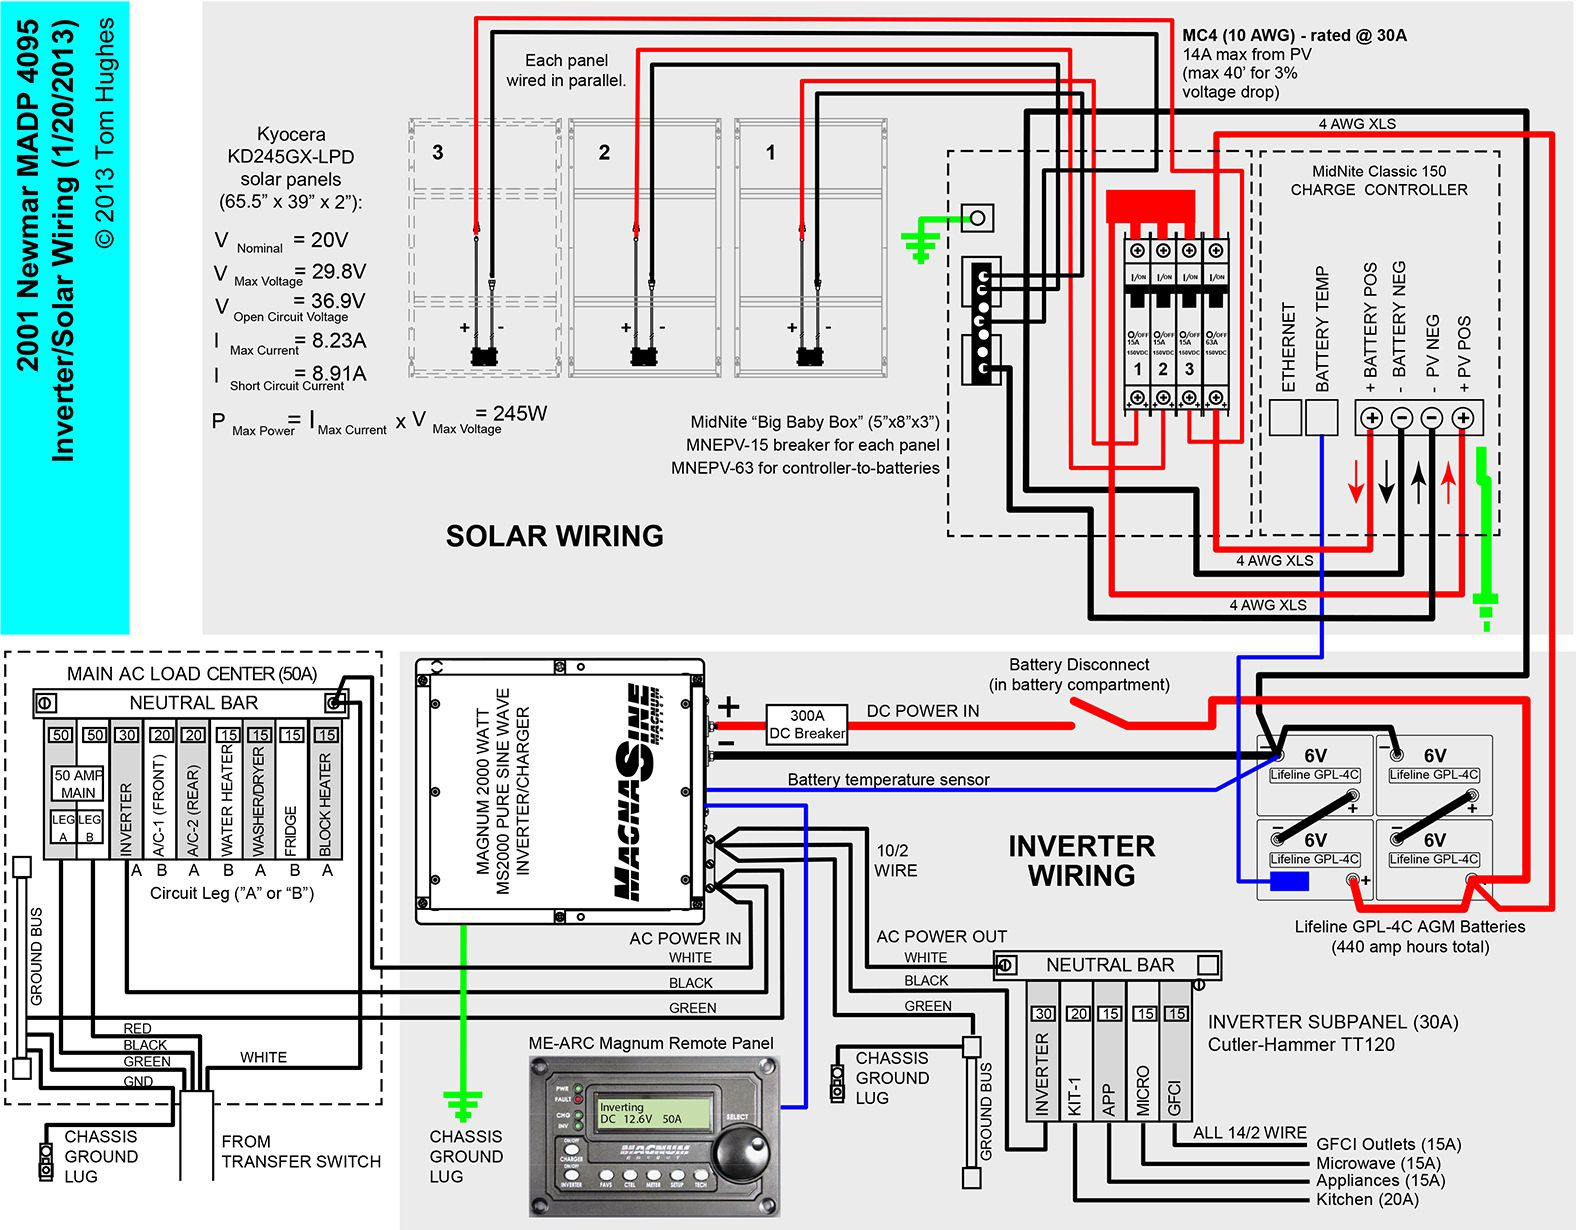 Wiring Diagram Rv Converter : Rv inverter wiring diagram